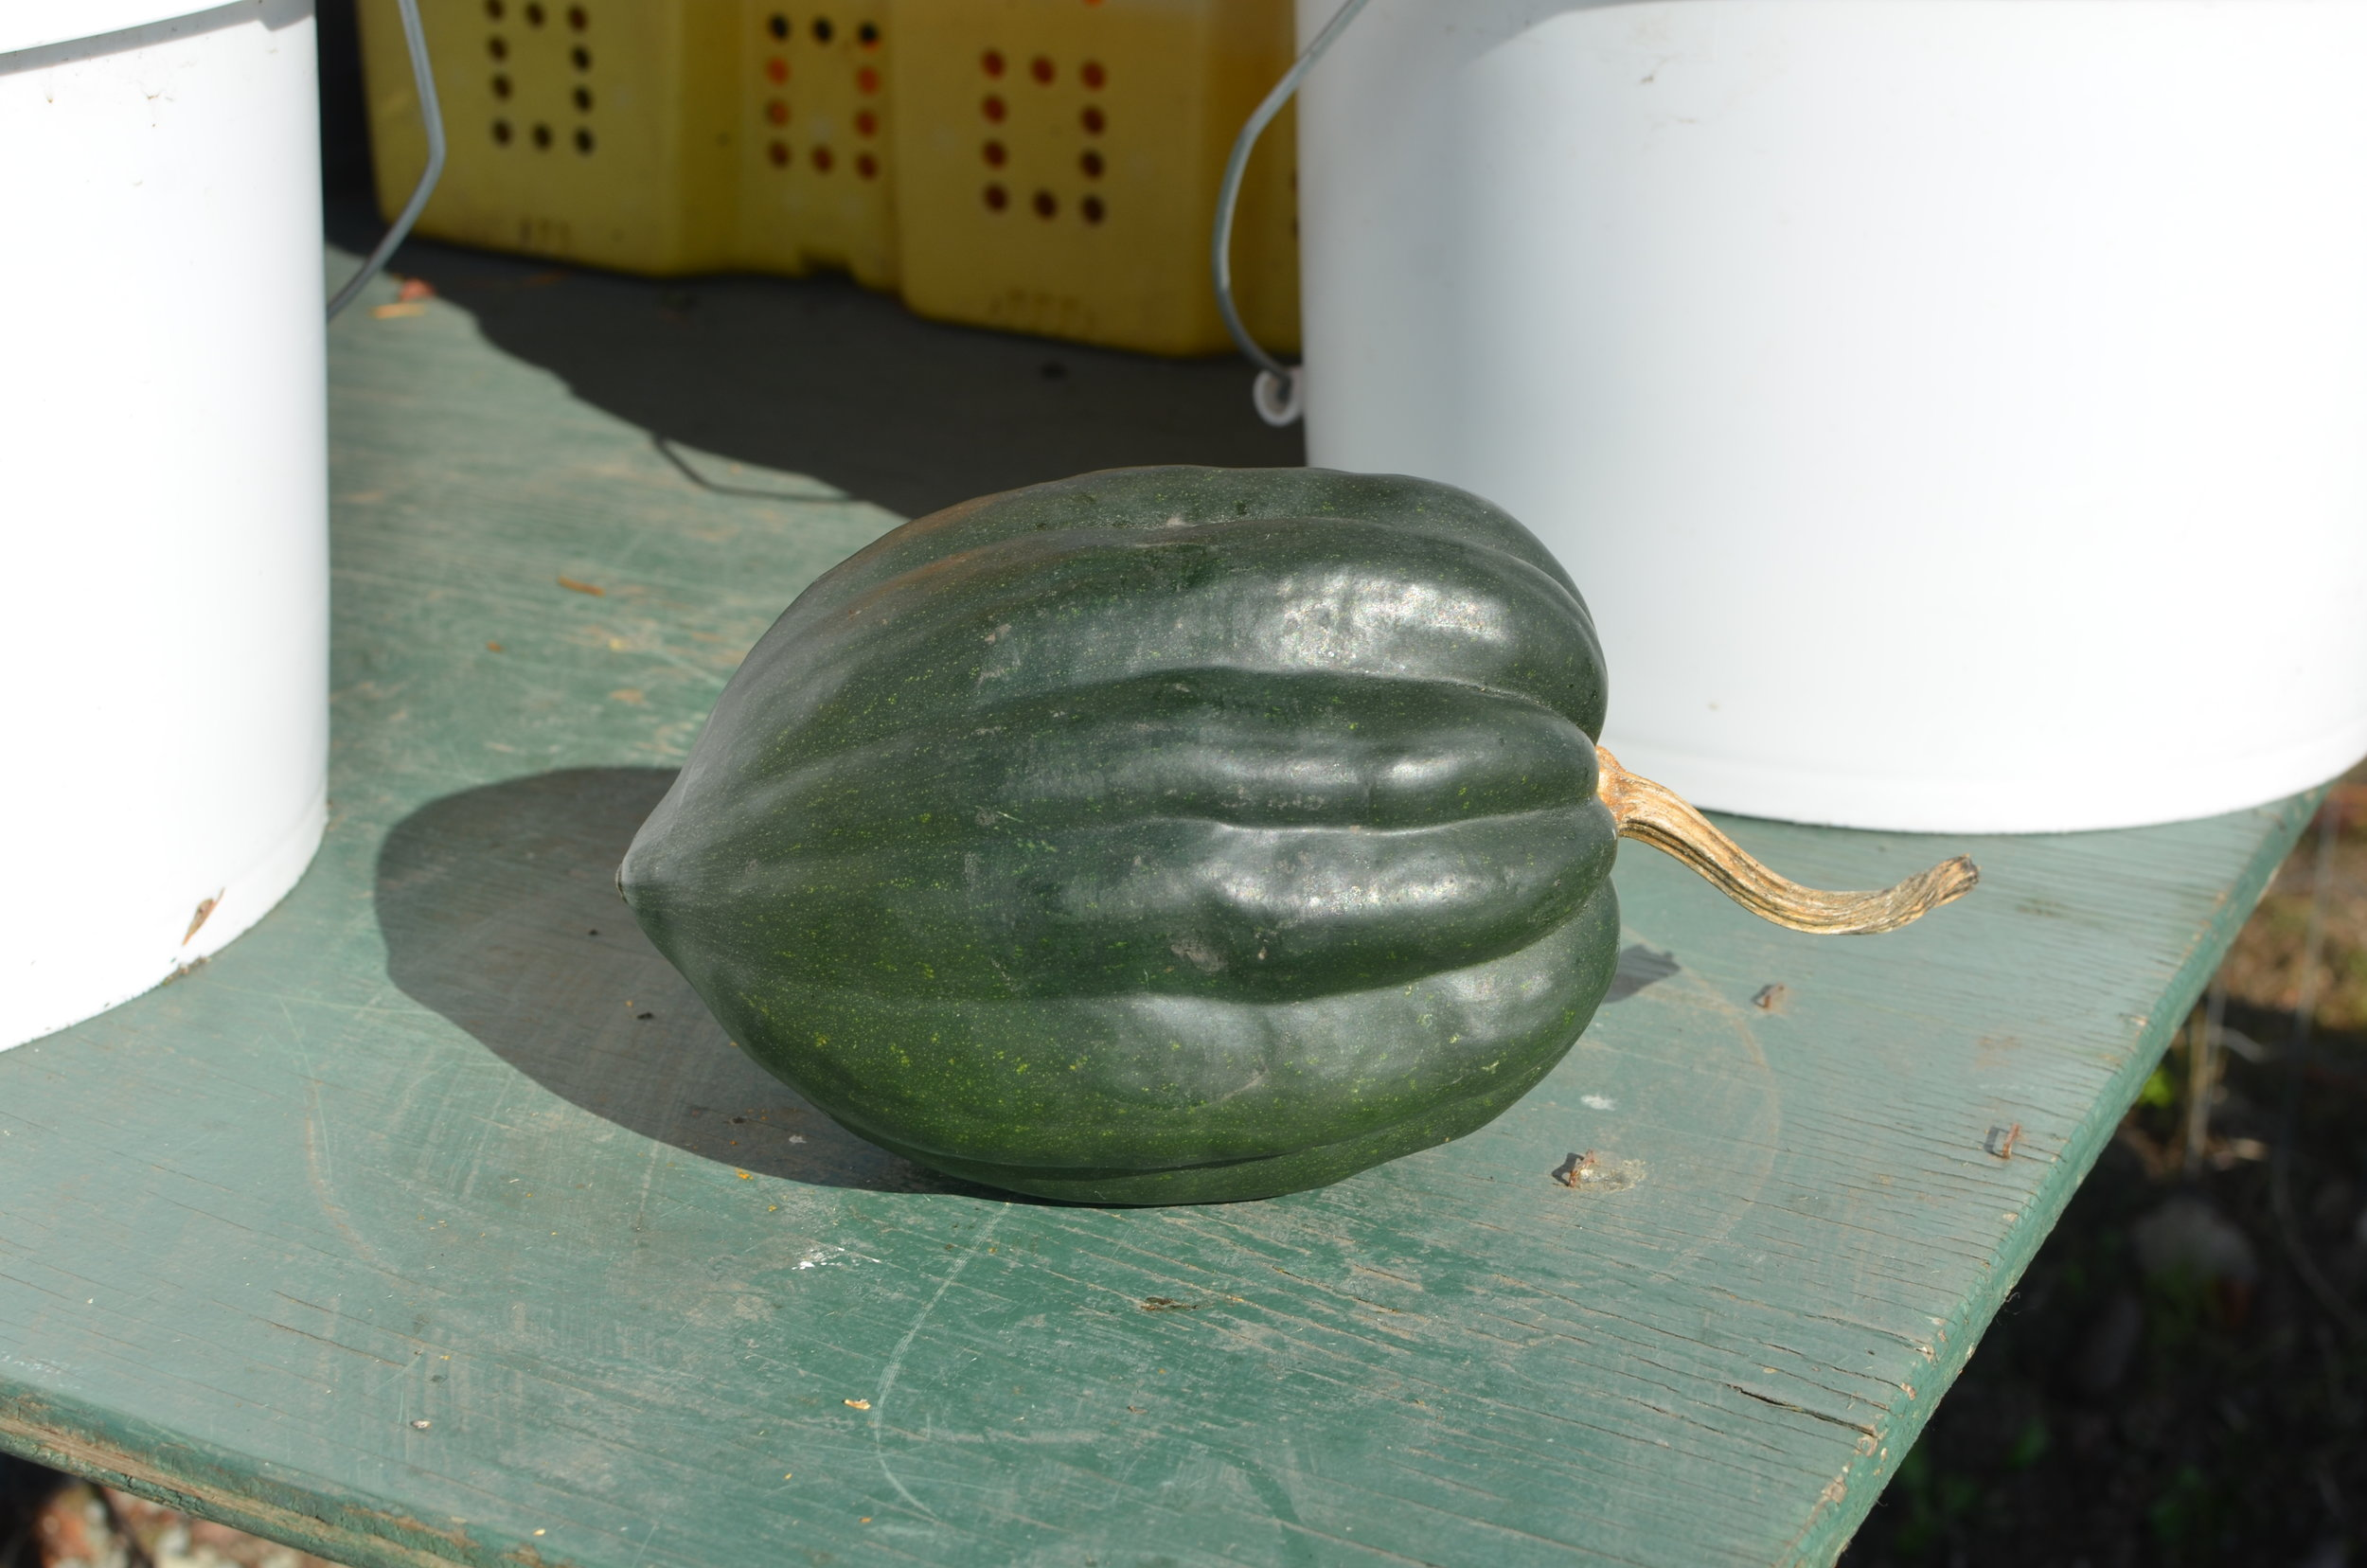 Acorn Squash - Mild in flavour, very versatile. Yellow flesh is earthy and slightly sweet.Ideal baked, roasted, and stuffing.